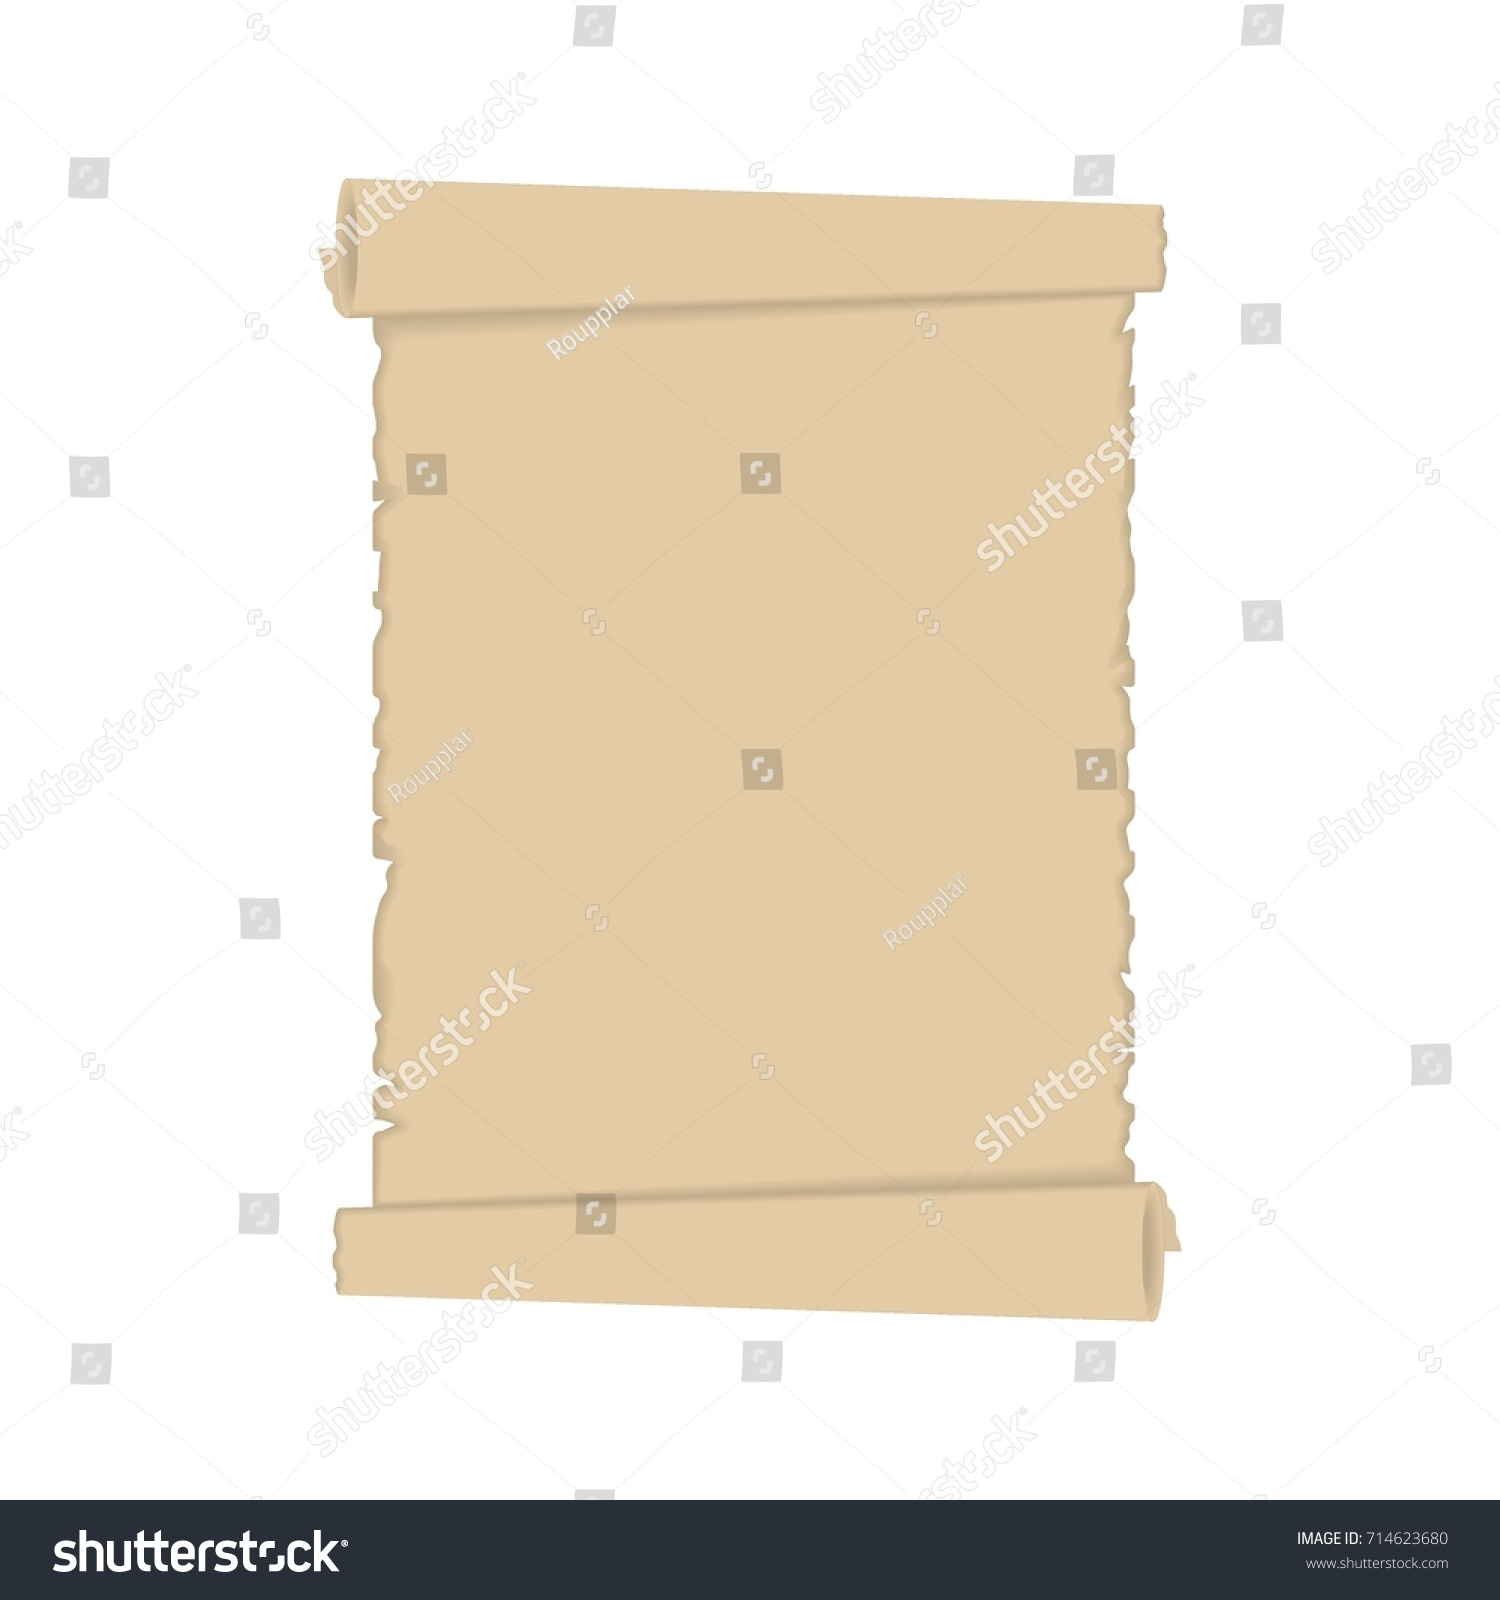 old scroll paper icon ancient parchment stock vector royalty free